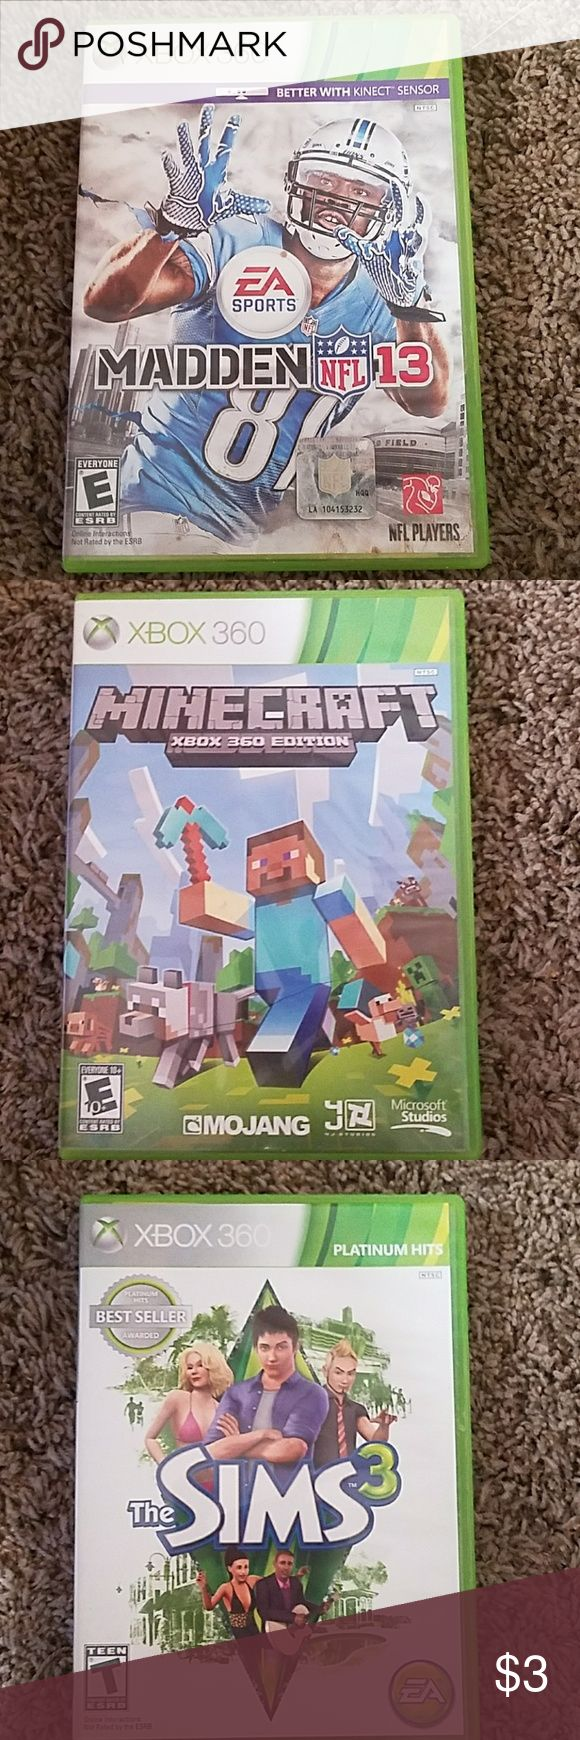 Xbox 360 games Dishonored, Skyrim Legendary Edition, Madden NFL 10, The Walking Dead Survival Instinct, Bad Company Battlefield, Sims 3, Minecraft, Madden NFL 13 Other